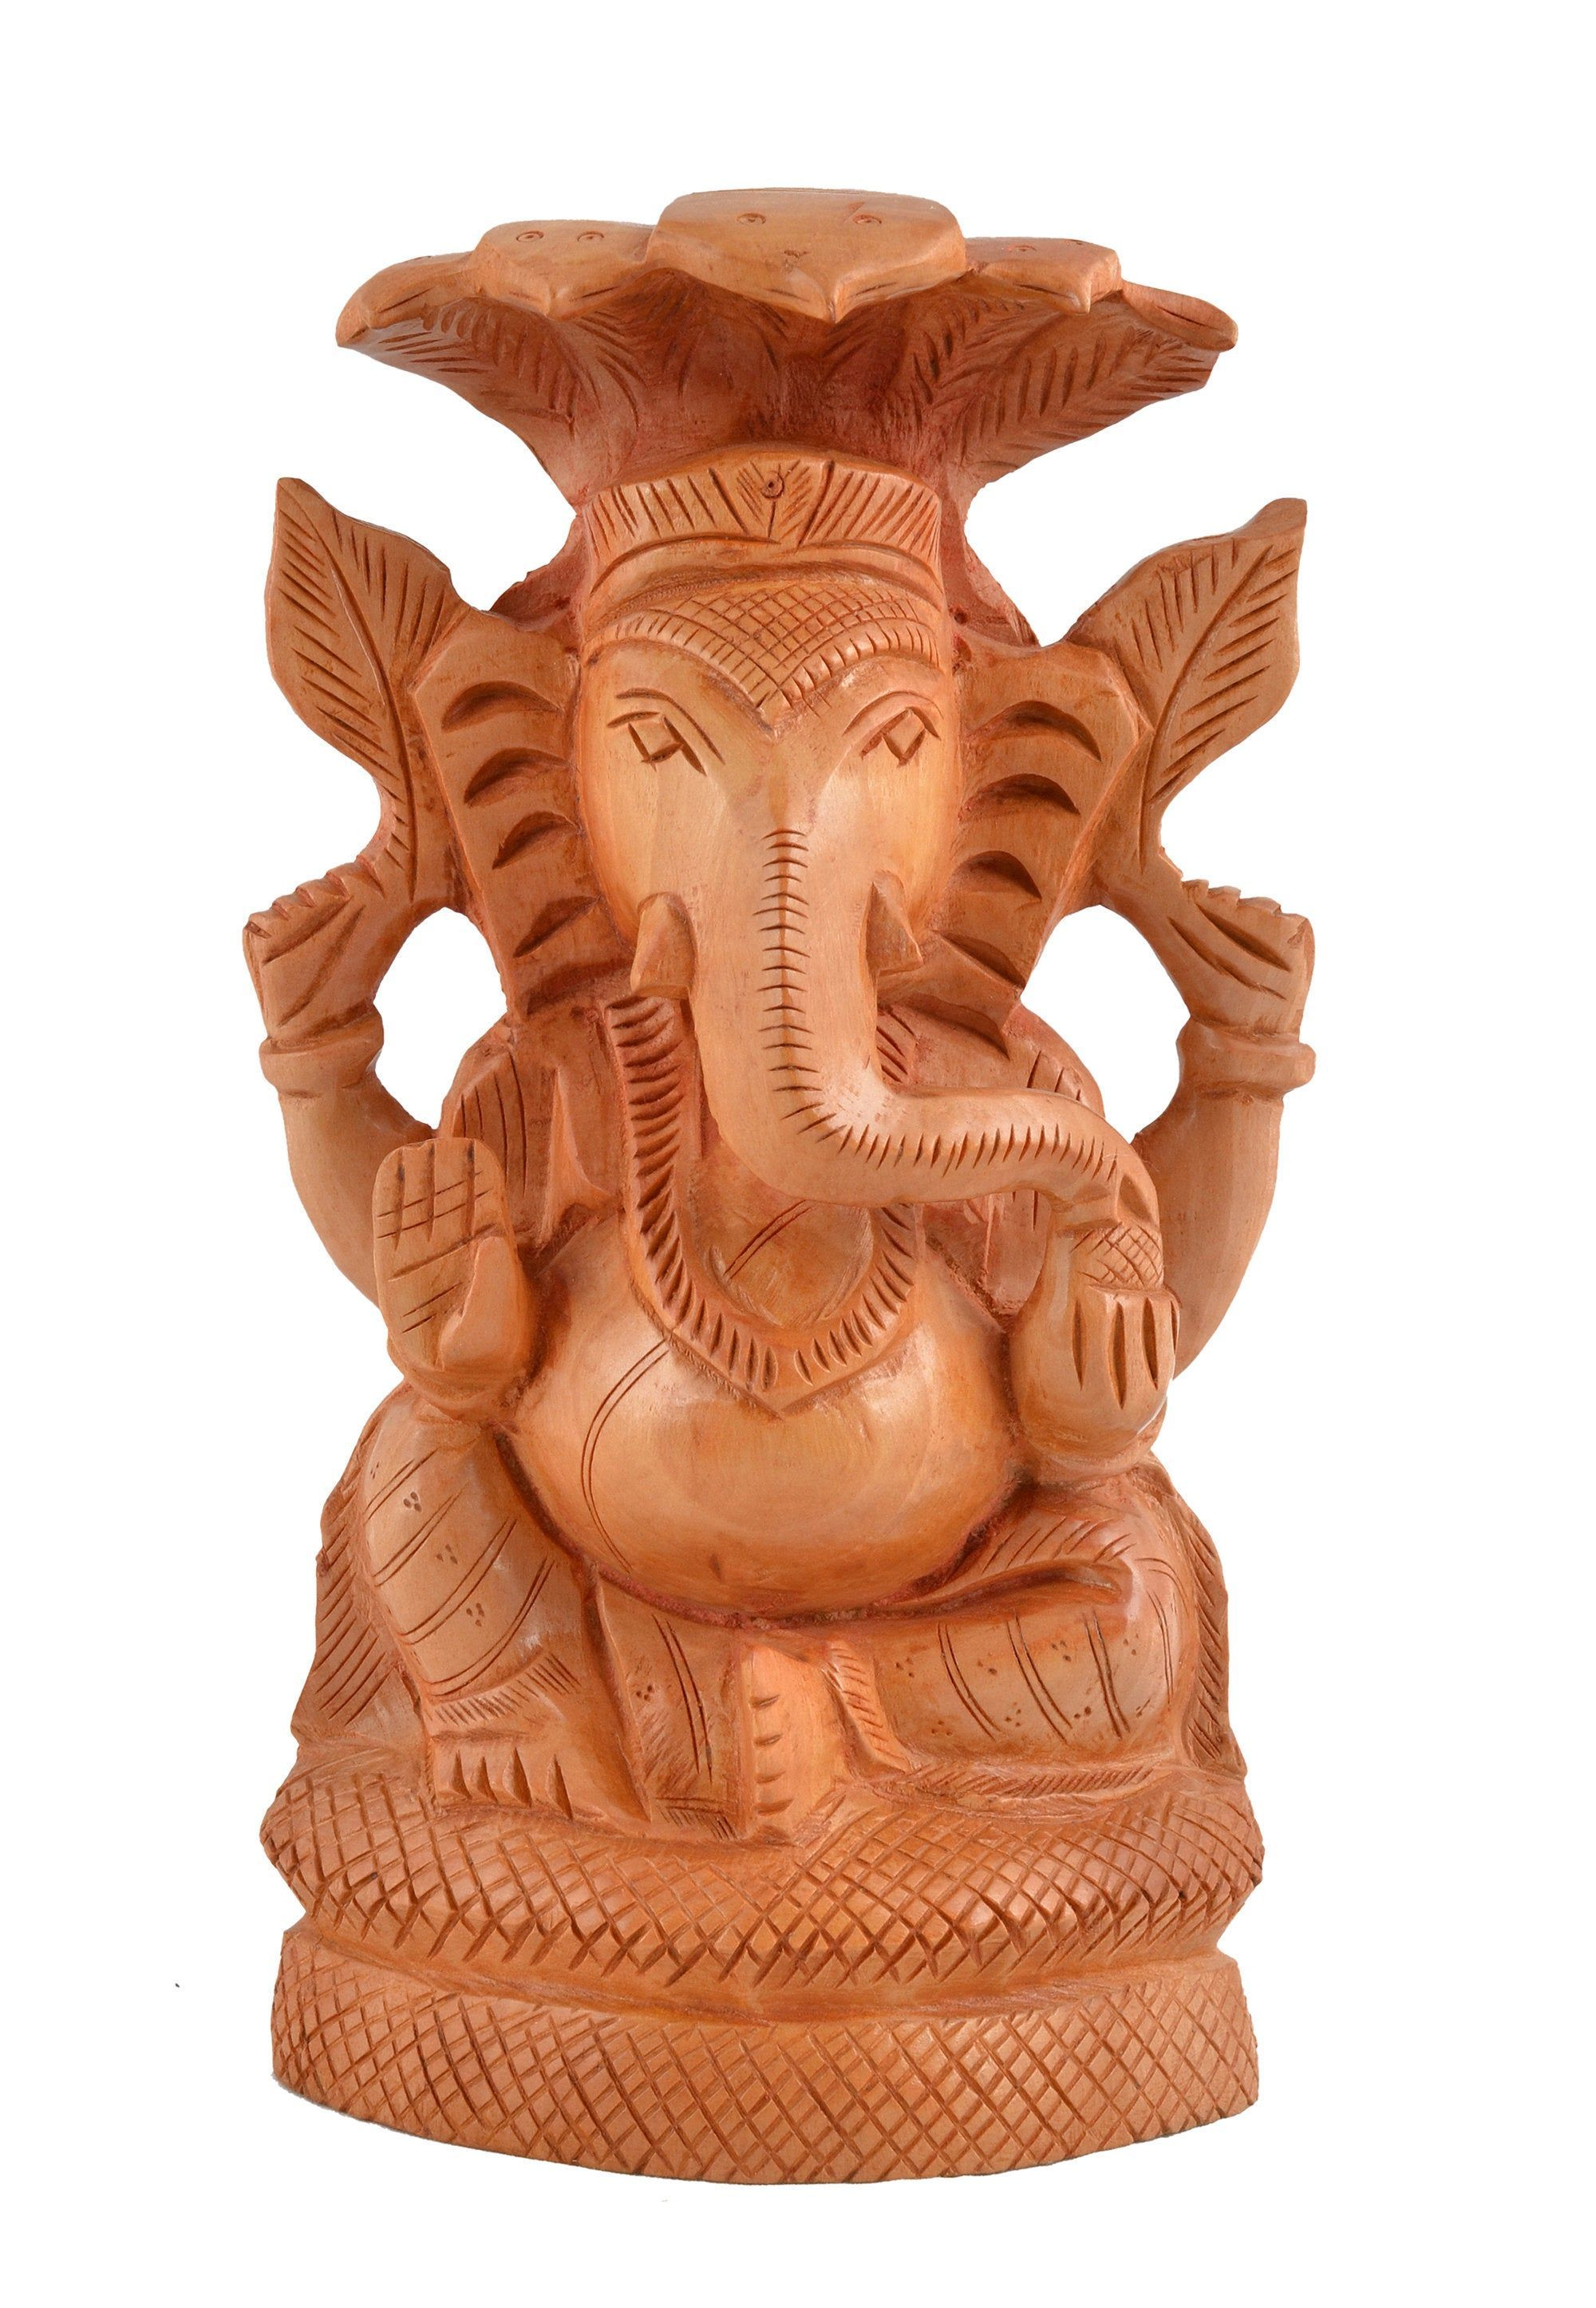 Decorative Indian Lord Ganesh Wooden Statue Lucky Figurine Living Room Ornament Showpiece For Housewarming Gift Satywan Singh Decorative I Ganesh Lord Etsy #showpiece #for #living #room